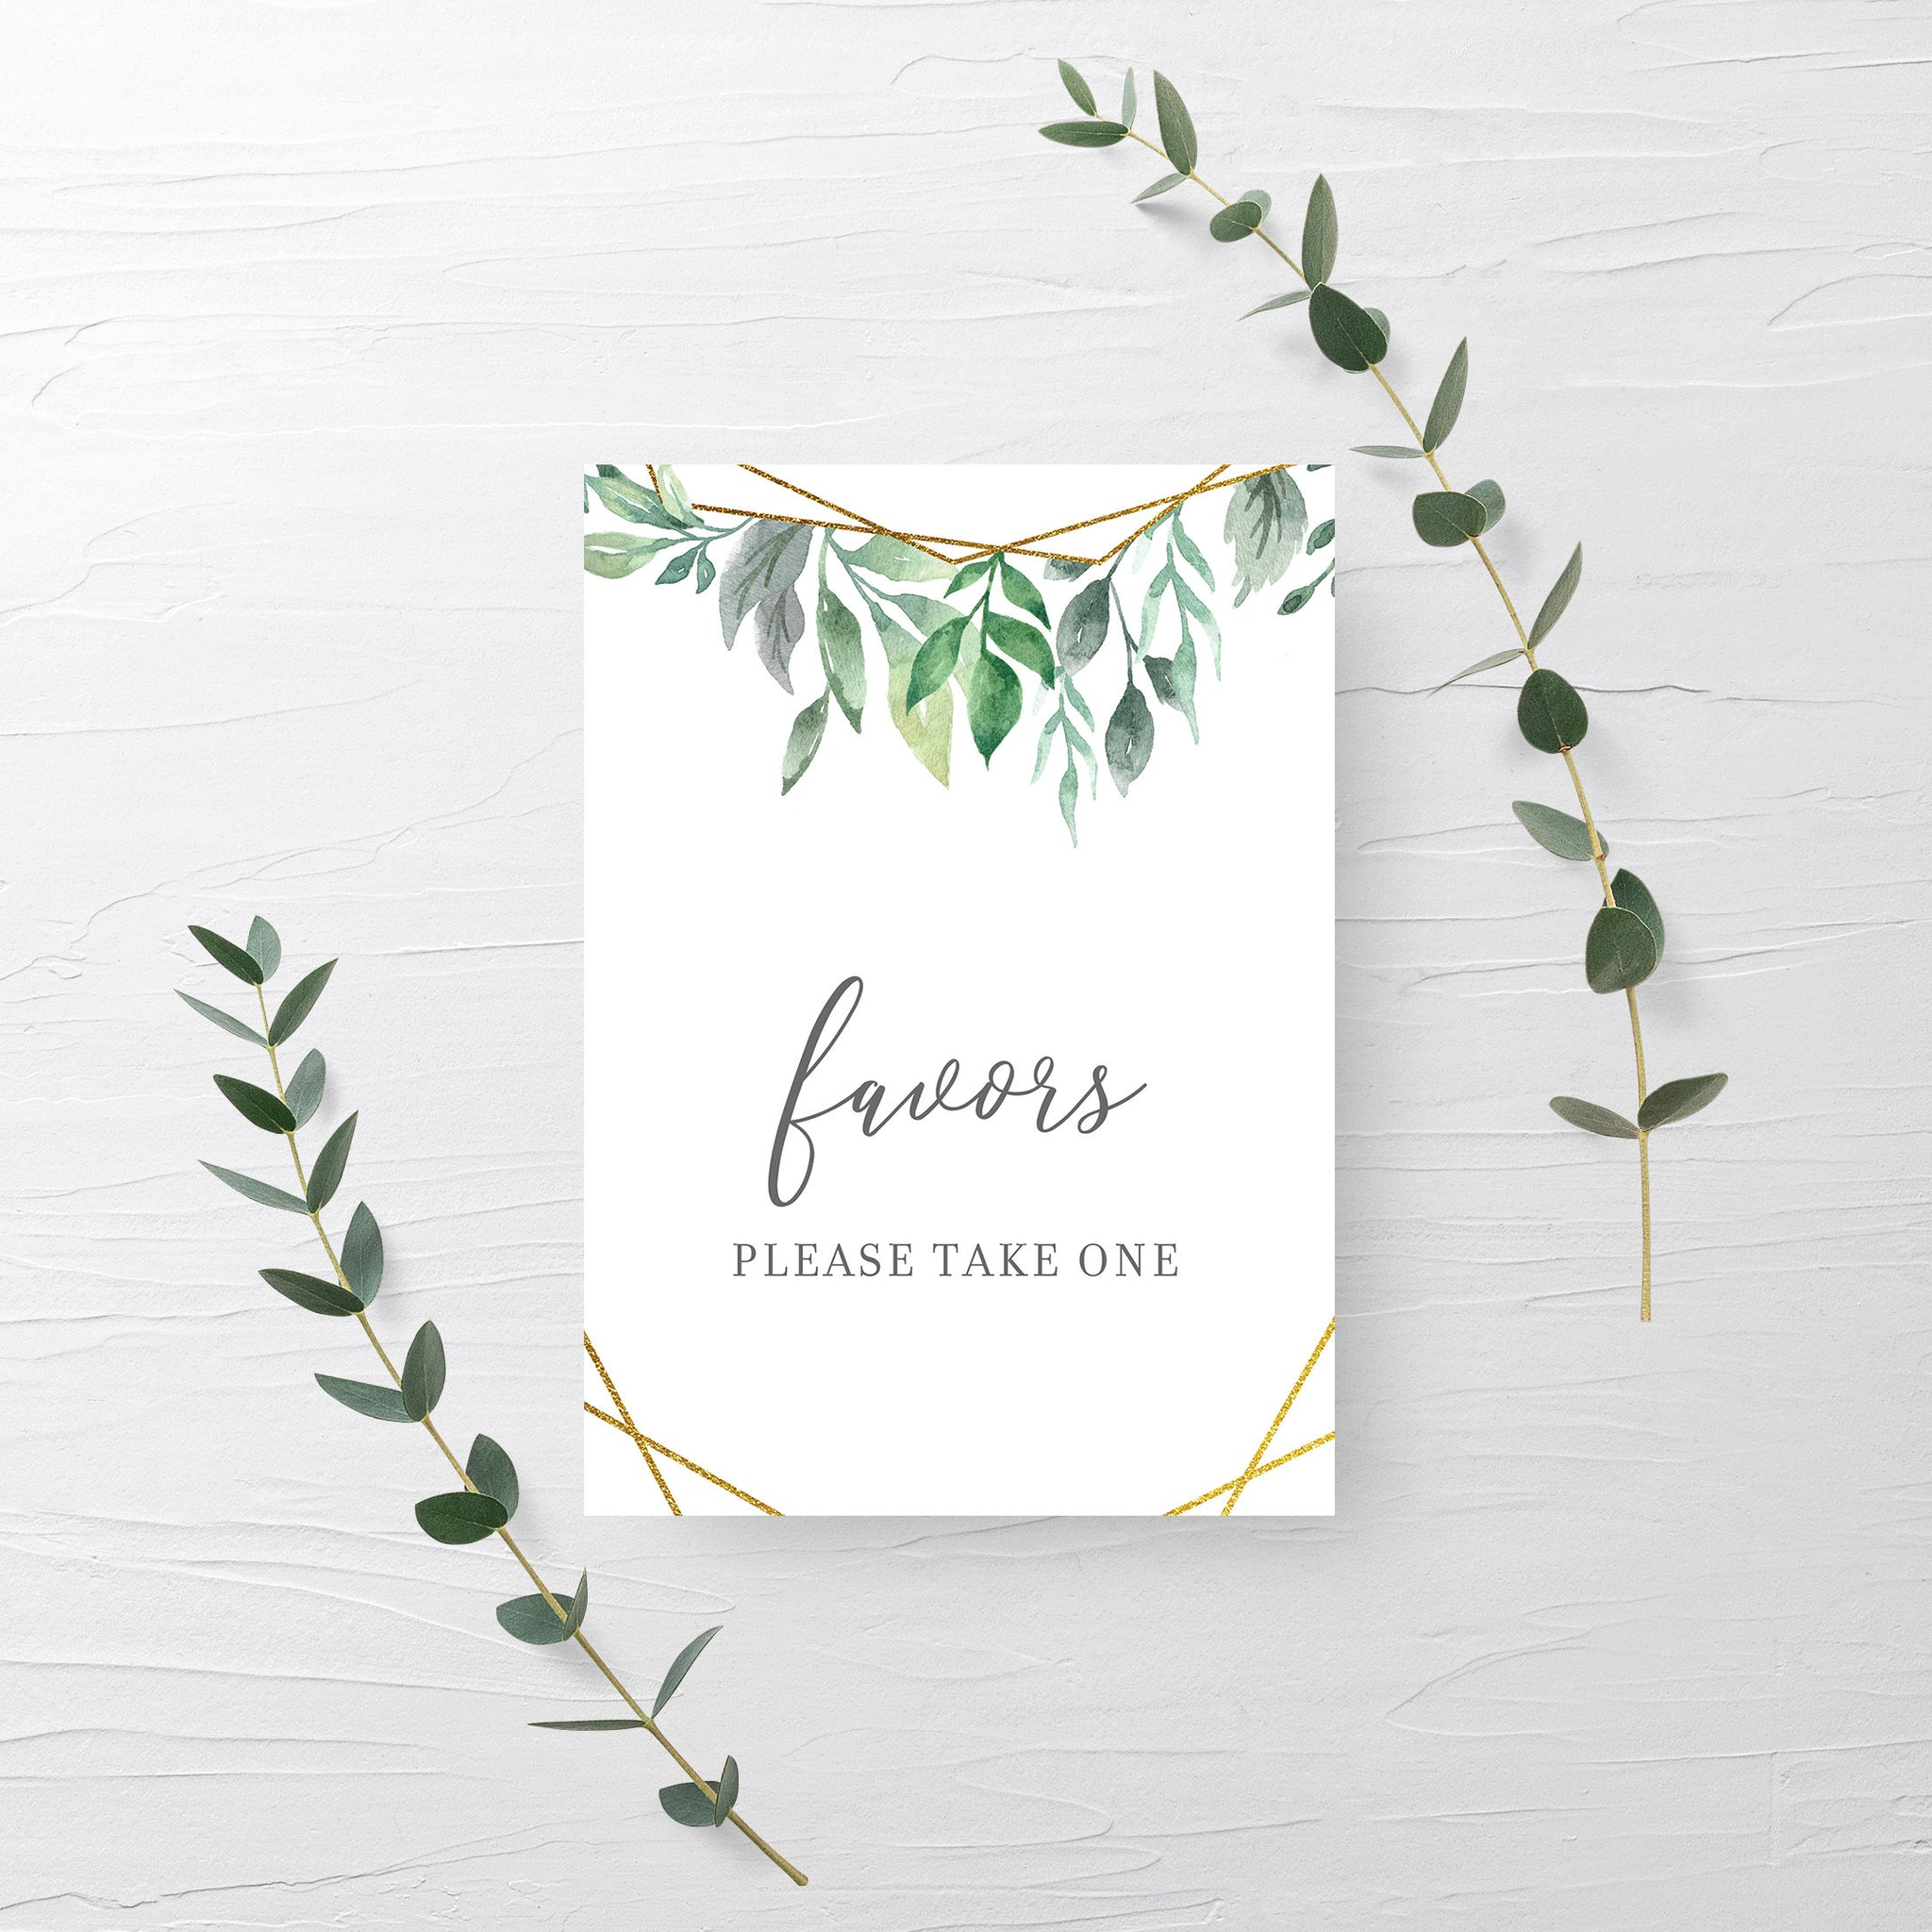 Geometric Gold Greenery Printable Favors Sign INSTANT DOWNLOAD, Birthday, Bridal Shower, Baby Shower, Wedding Decorations Supplies - GFG100 - @PlumPolkaDot